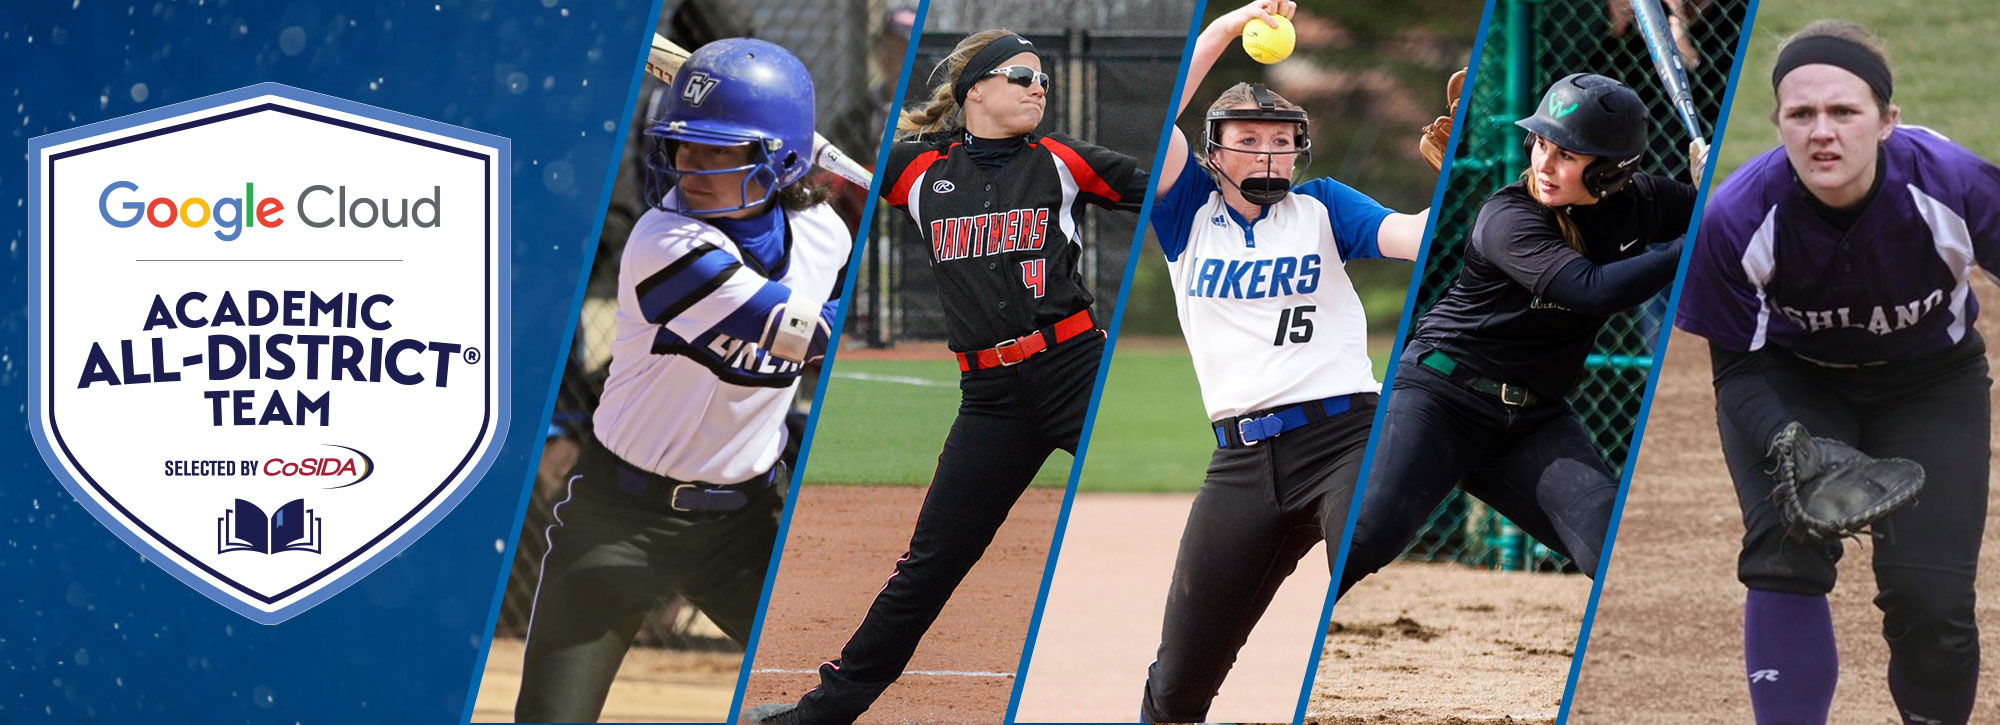 Five Earn Google Cloud Academic All-District Softball Recognition